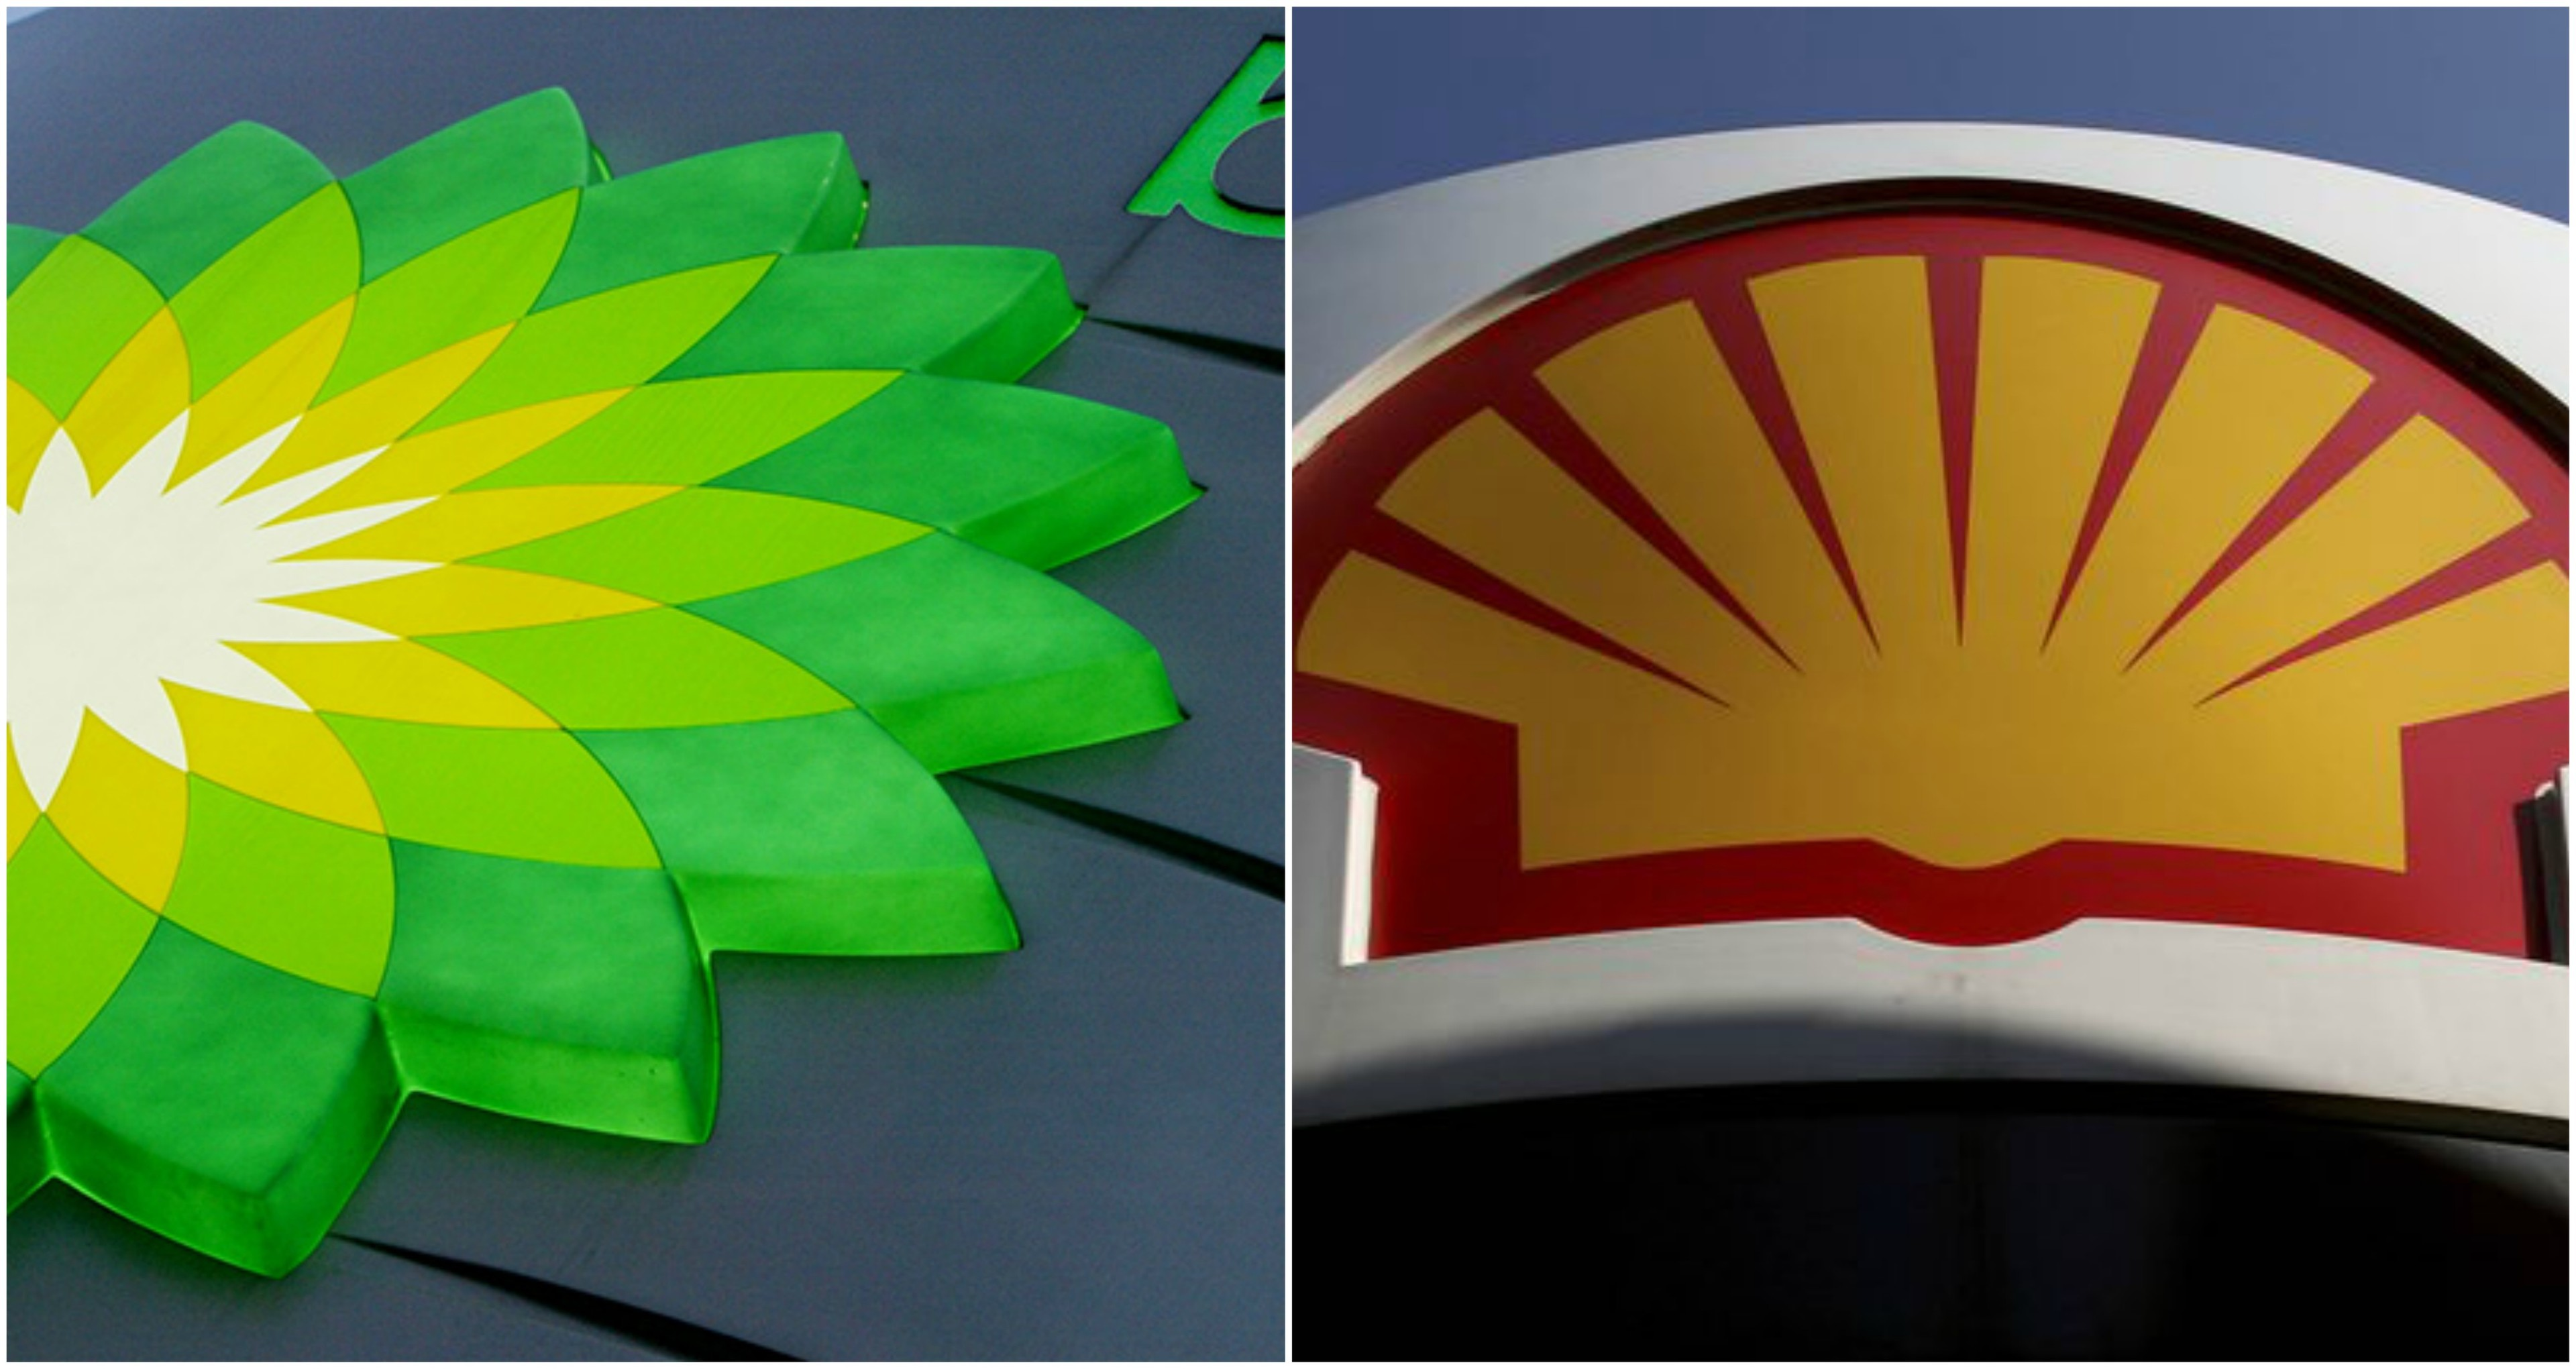 BP and Shell will reveal their full year results soon.